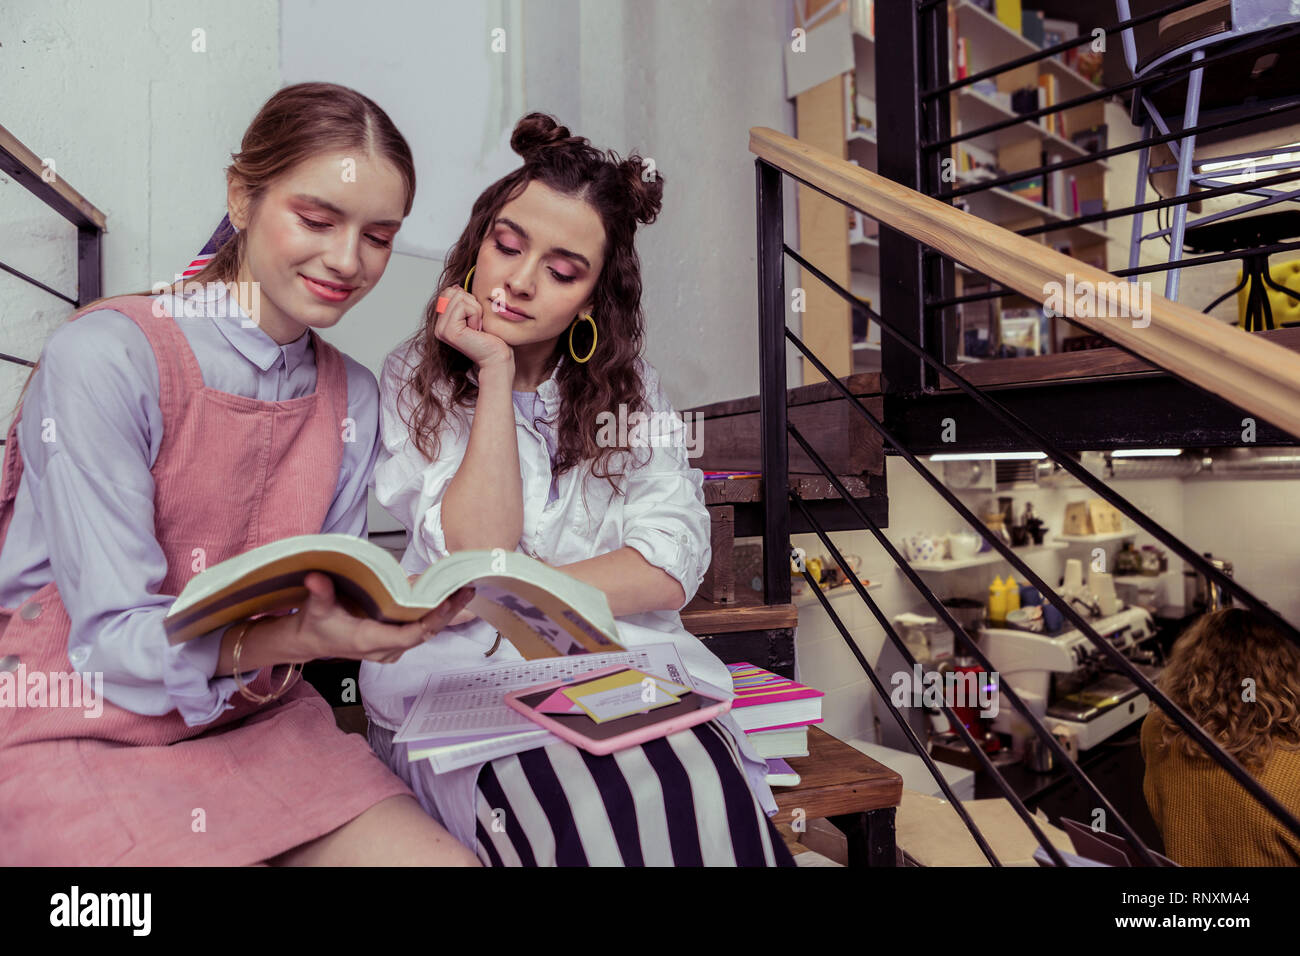 Calm and peaceful girls sitting shoulder to shoulder and reading book - Stock Image